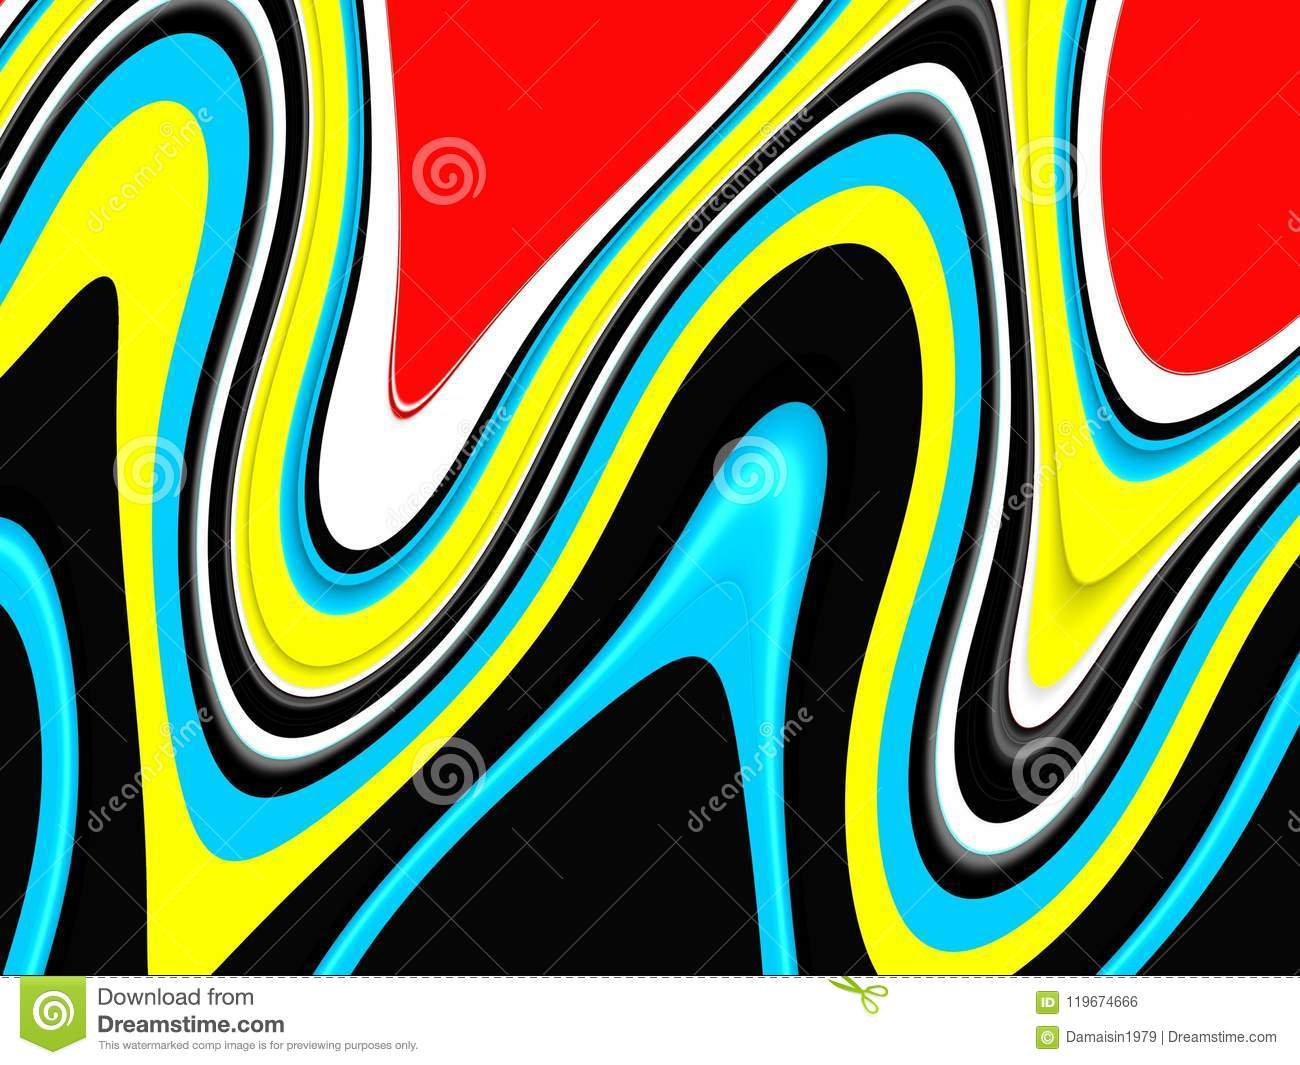 Playful Black Red Yellow Waves Background Waves Like Shapes